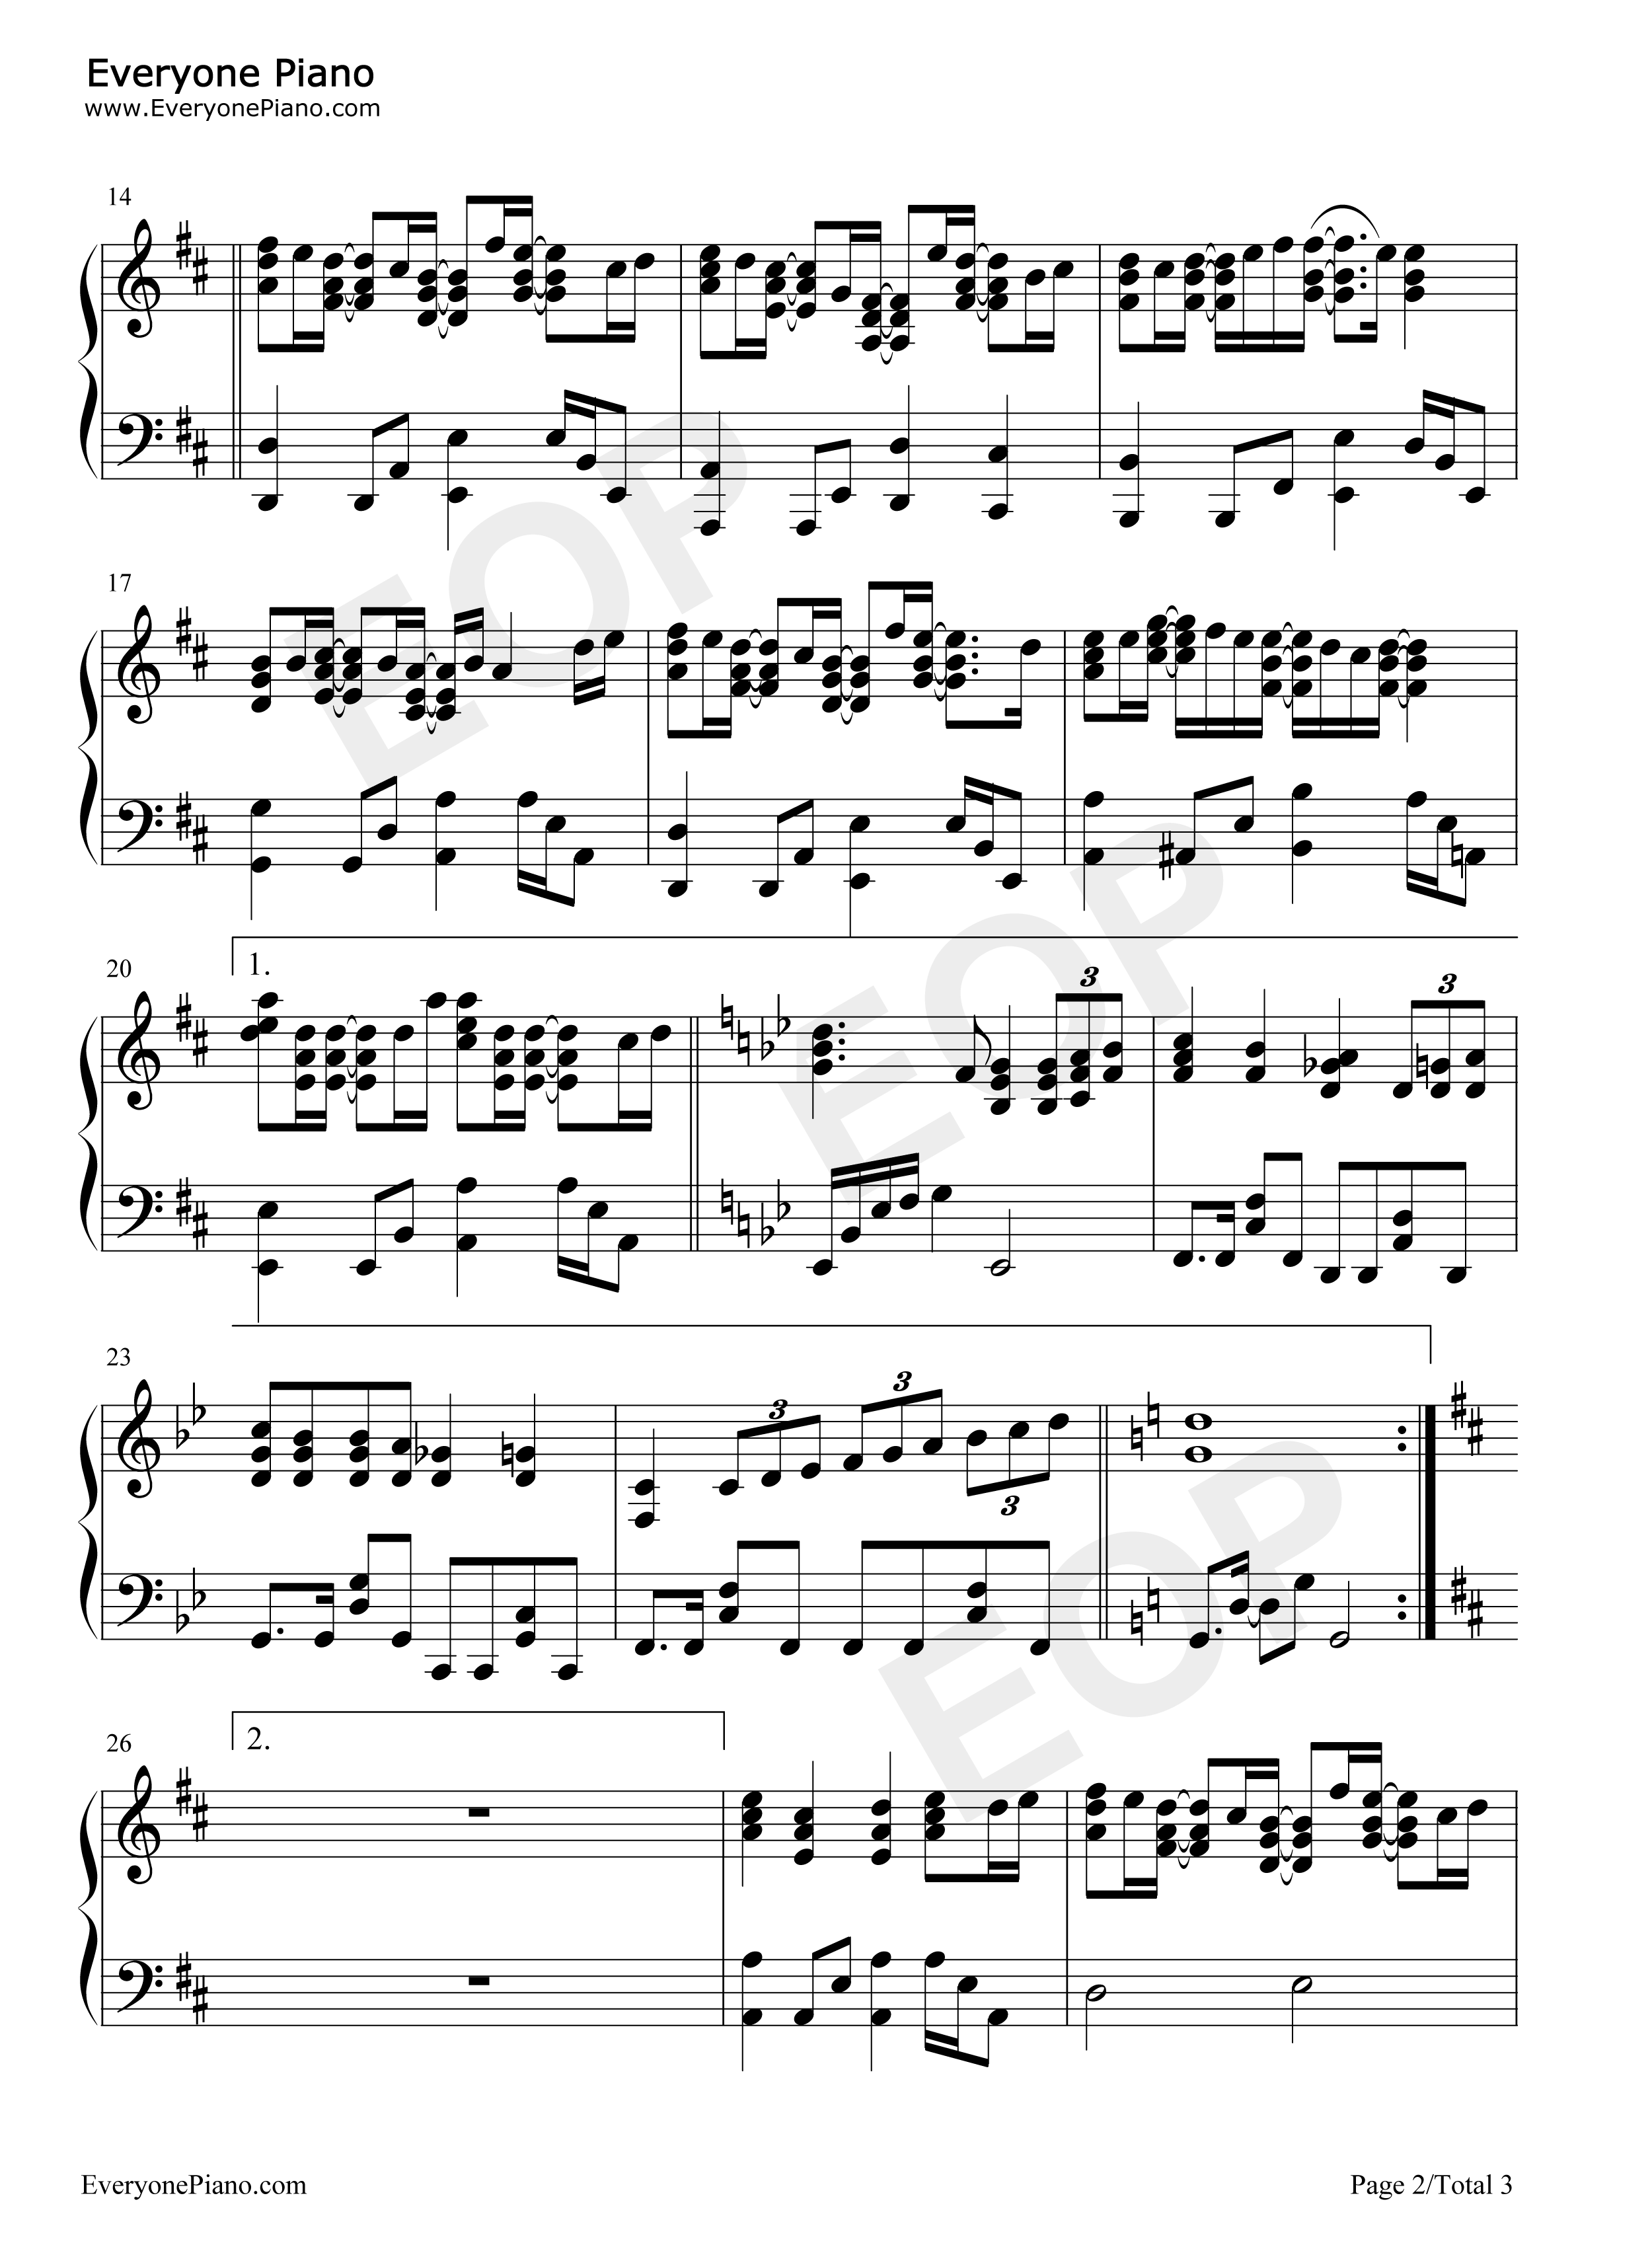 Dreaming dream high ost stave preview 2 free piano sheet music listen now print sheet dreaming dream high ost stave preview 2 hexwebz Image collections